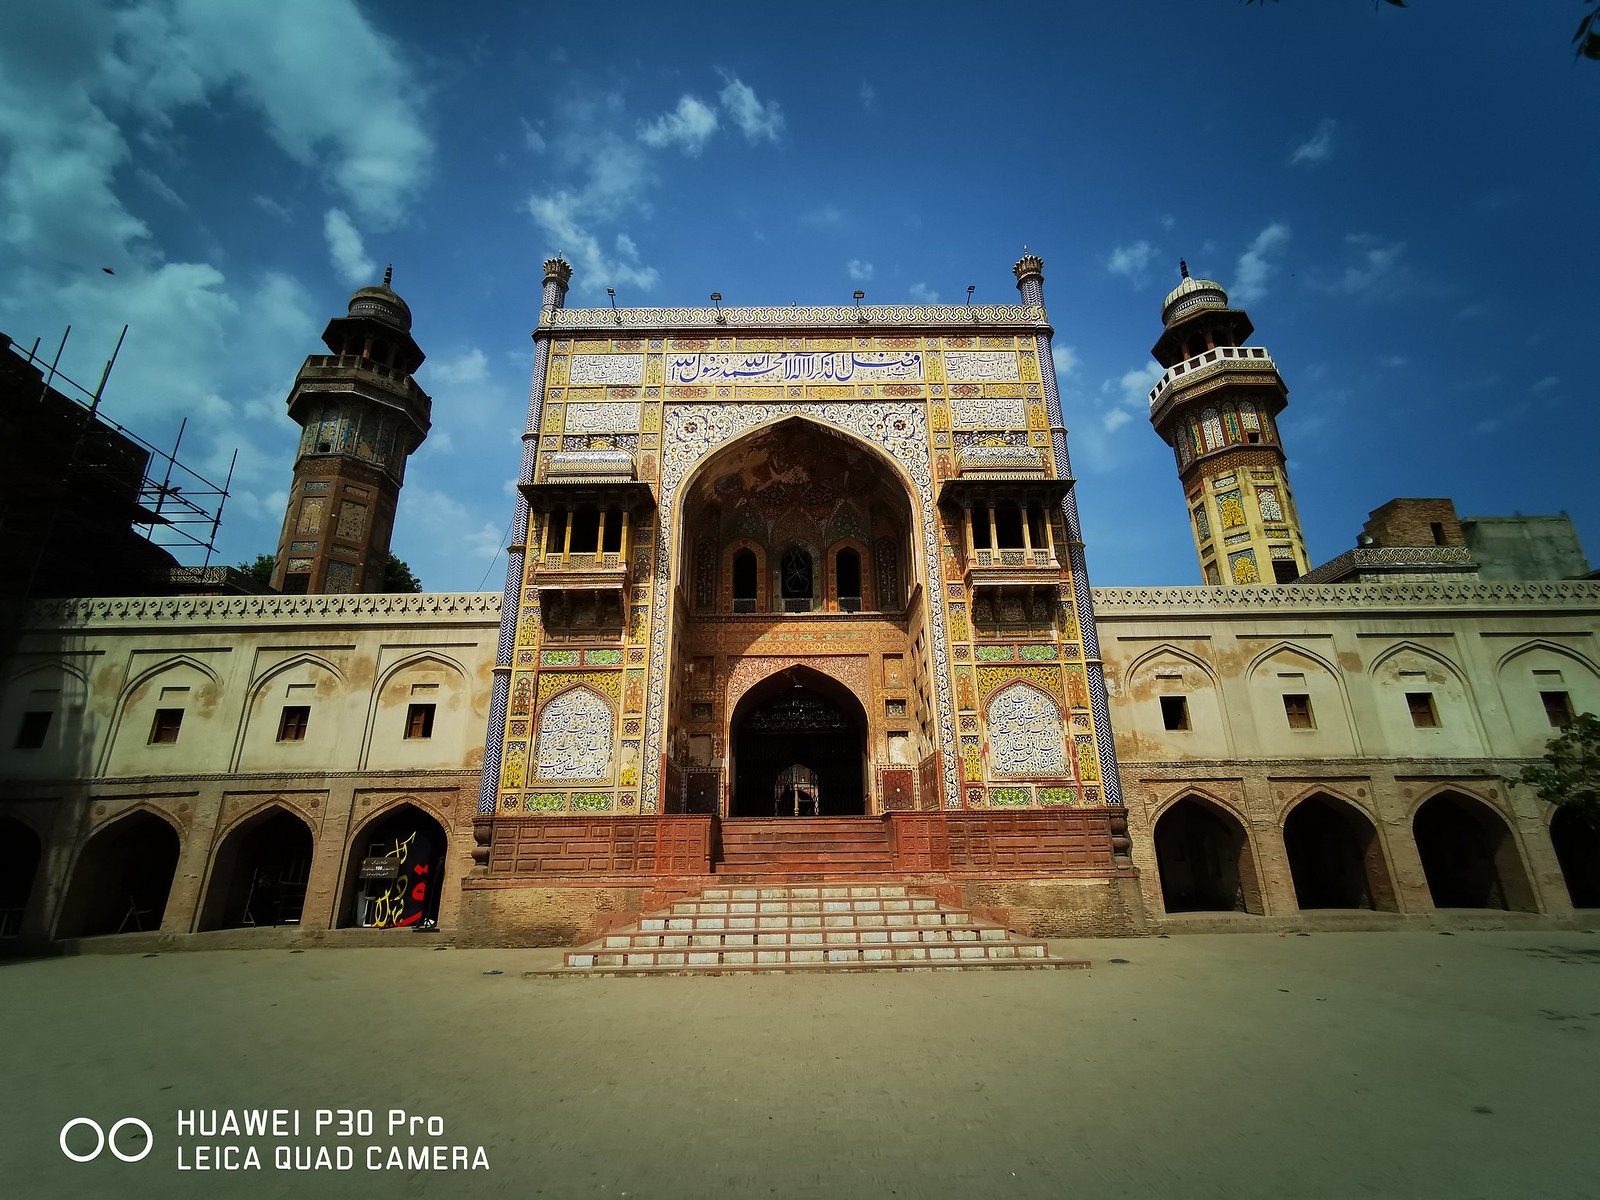 Wazir Khan Mosque Entrance Picture with Ultra Wide Angle Lens on Huawei P30 Pro